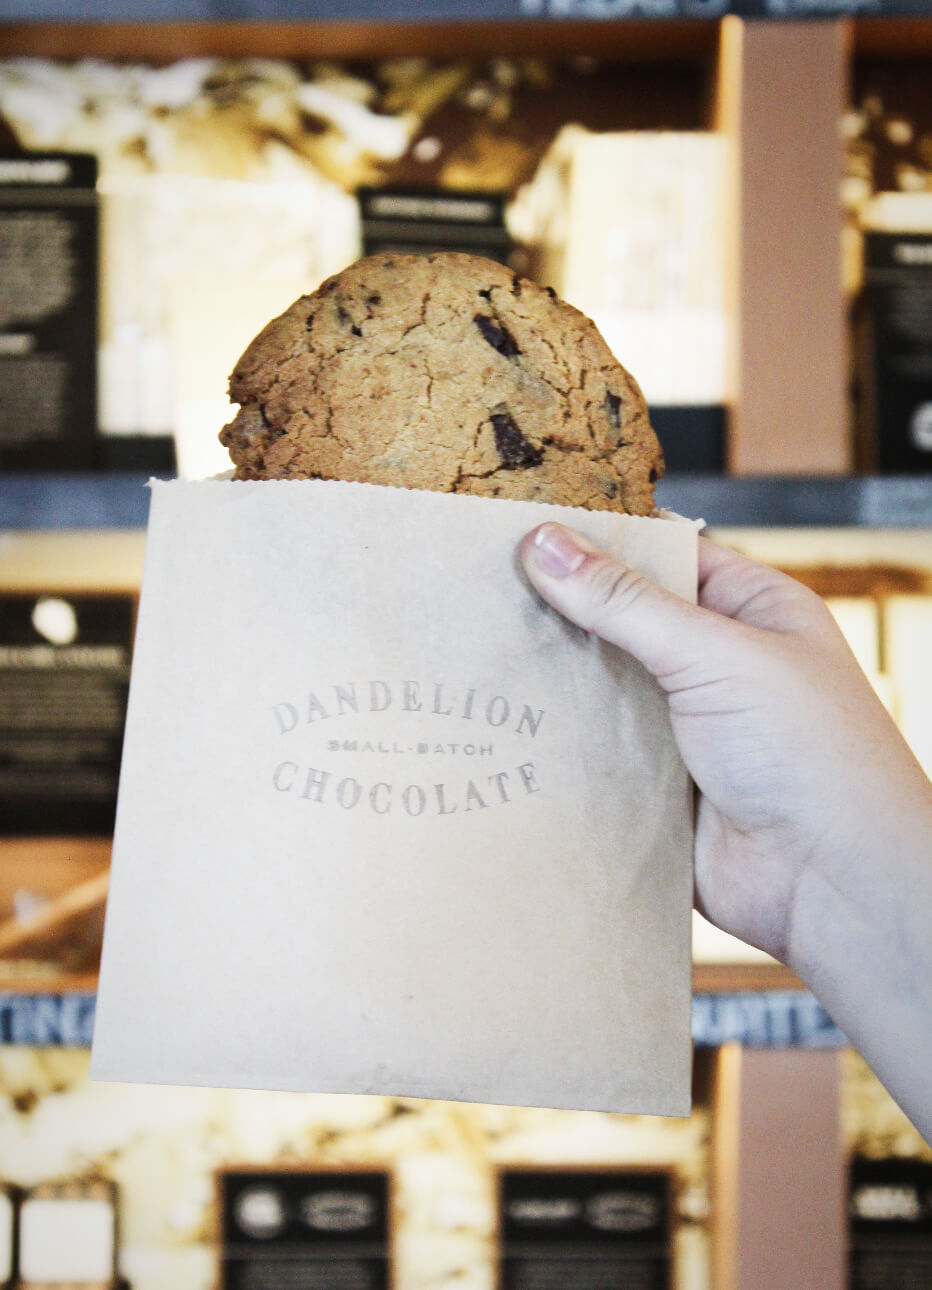 An enormous cookie from Dandelion Chocolate stuffed full of huge chunks of single-origin artisanal chocolatey heaven on the Ultra Chocolate tour in San Francisco, California.